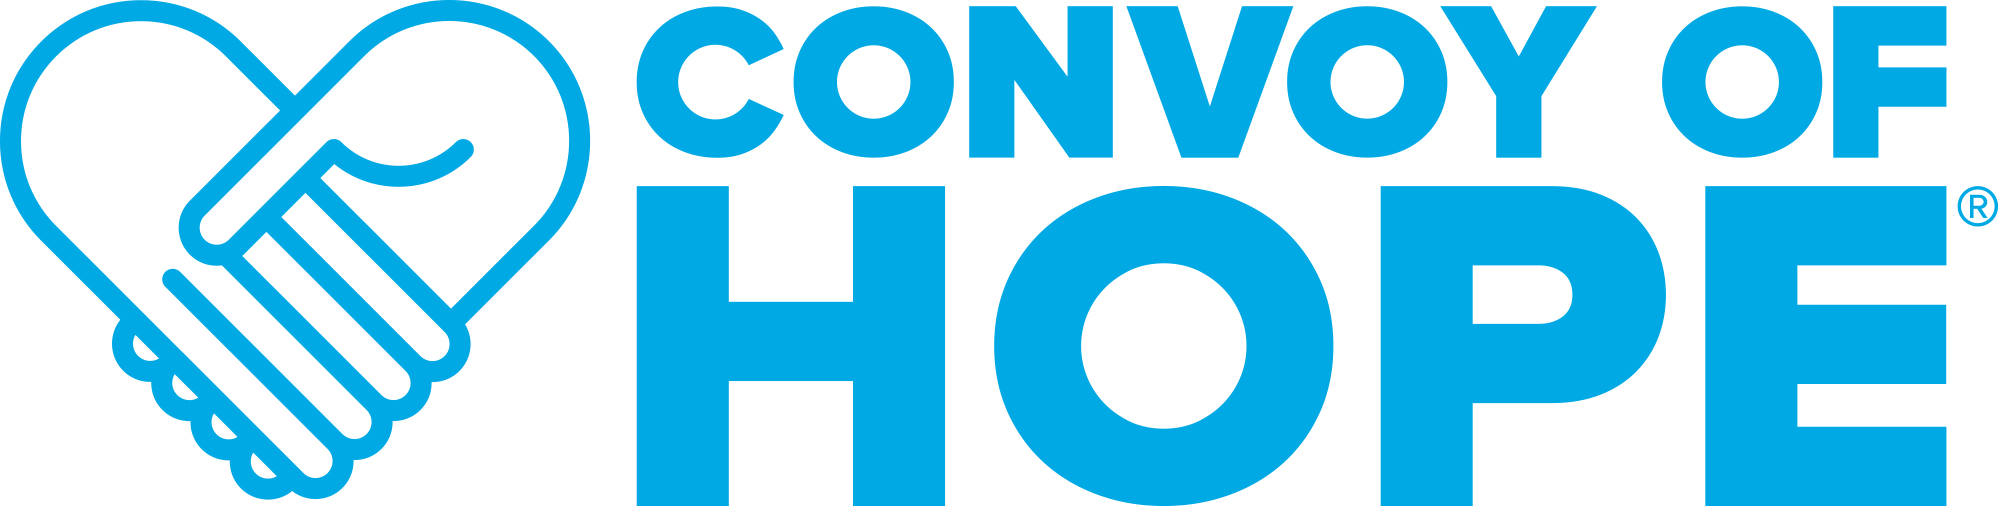 Image result for Convoy of hope